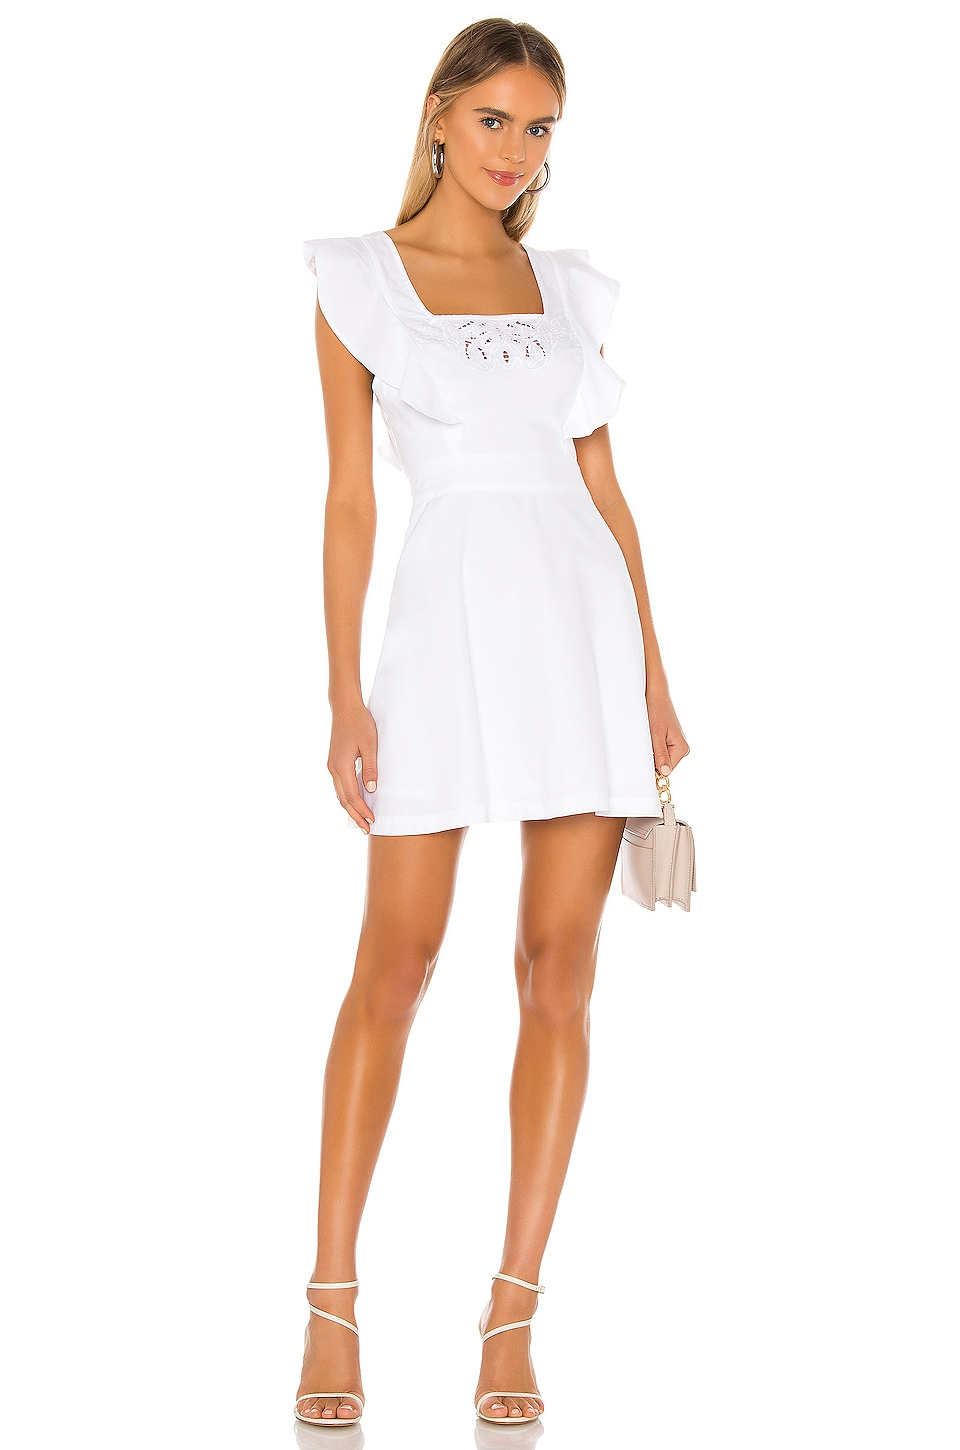 Tie Back Dress             BCBGeneration                                                                                                       CA$ 162.65 18